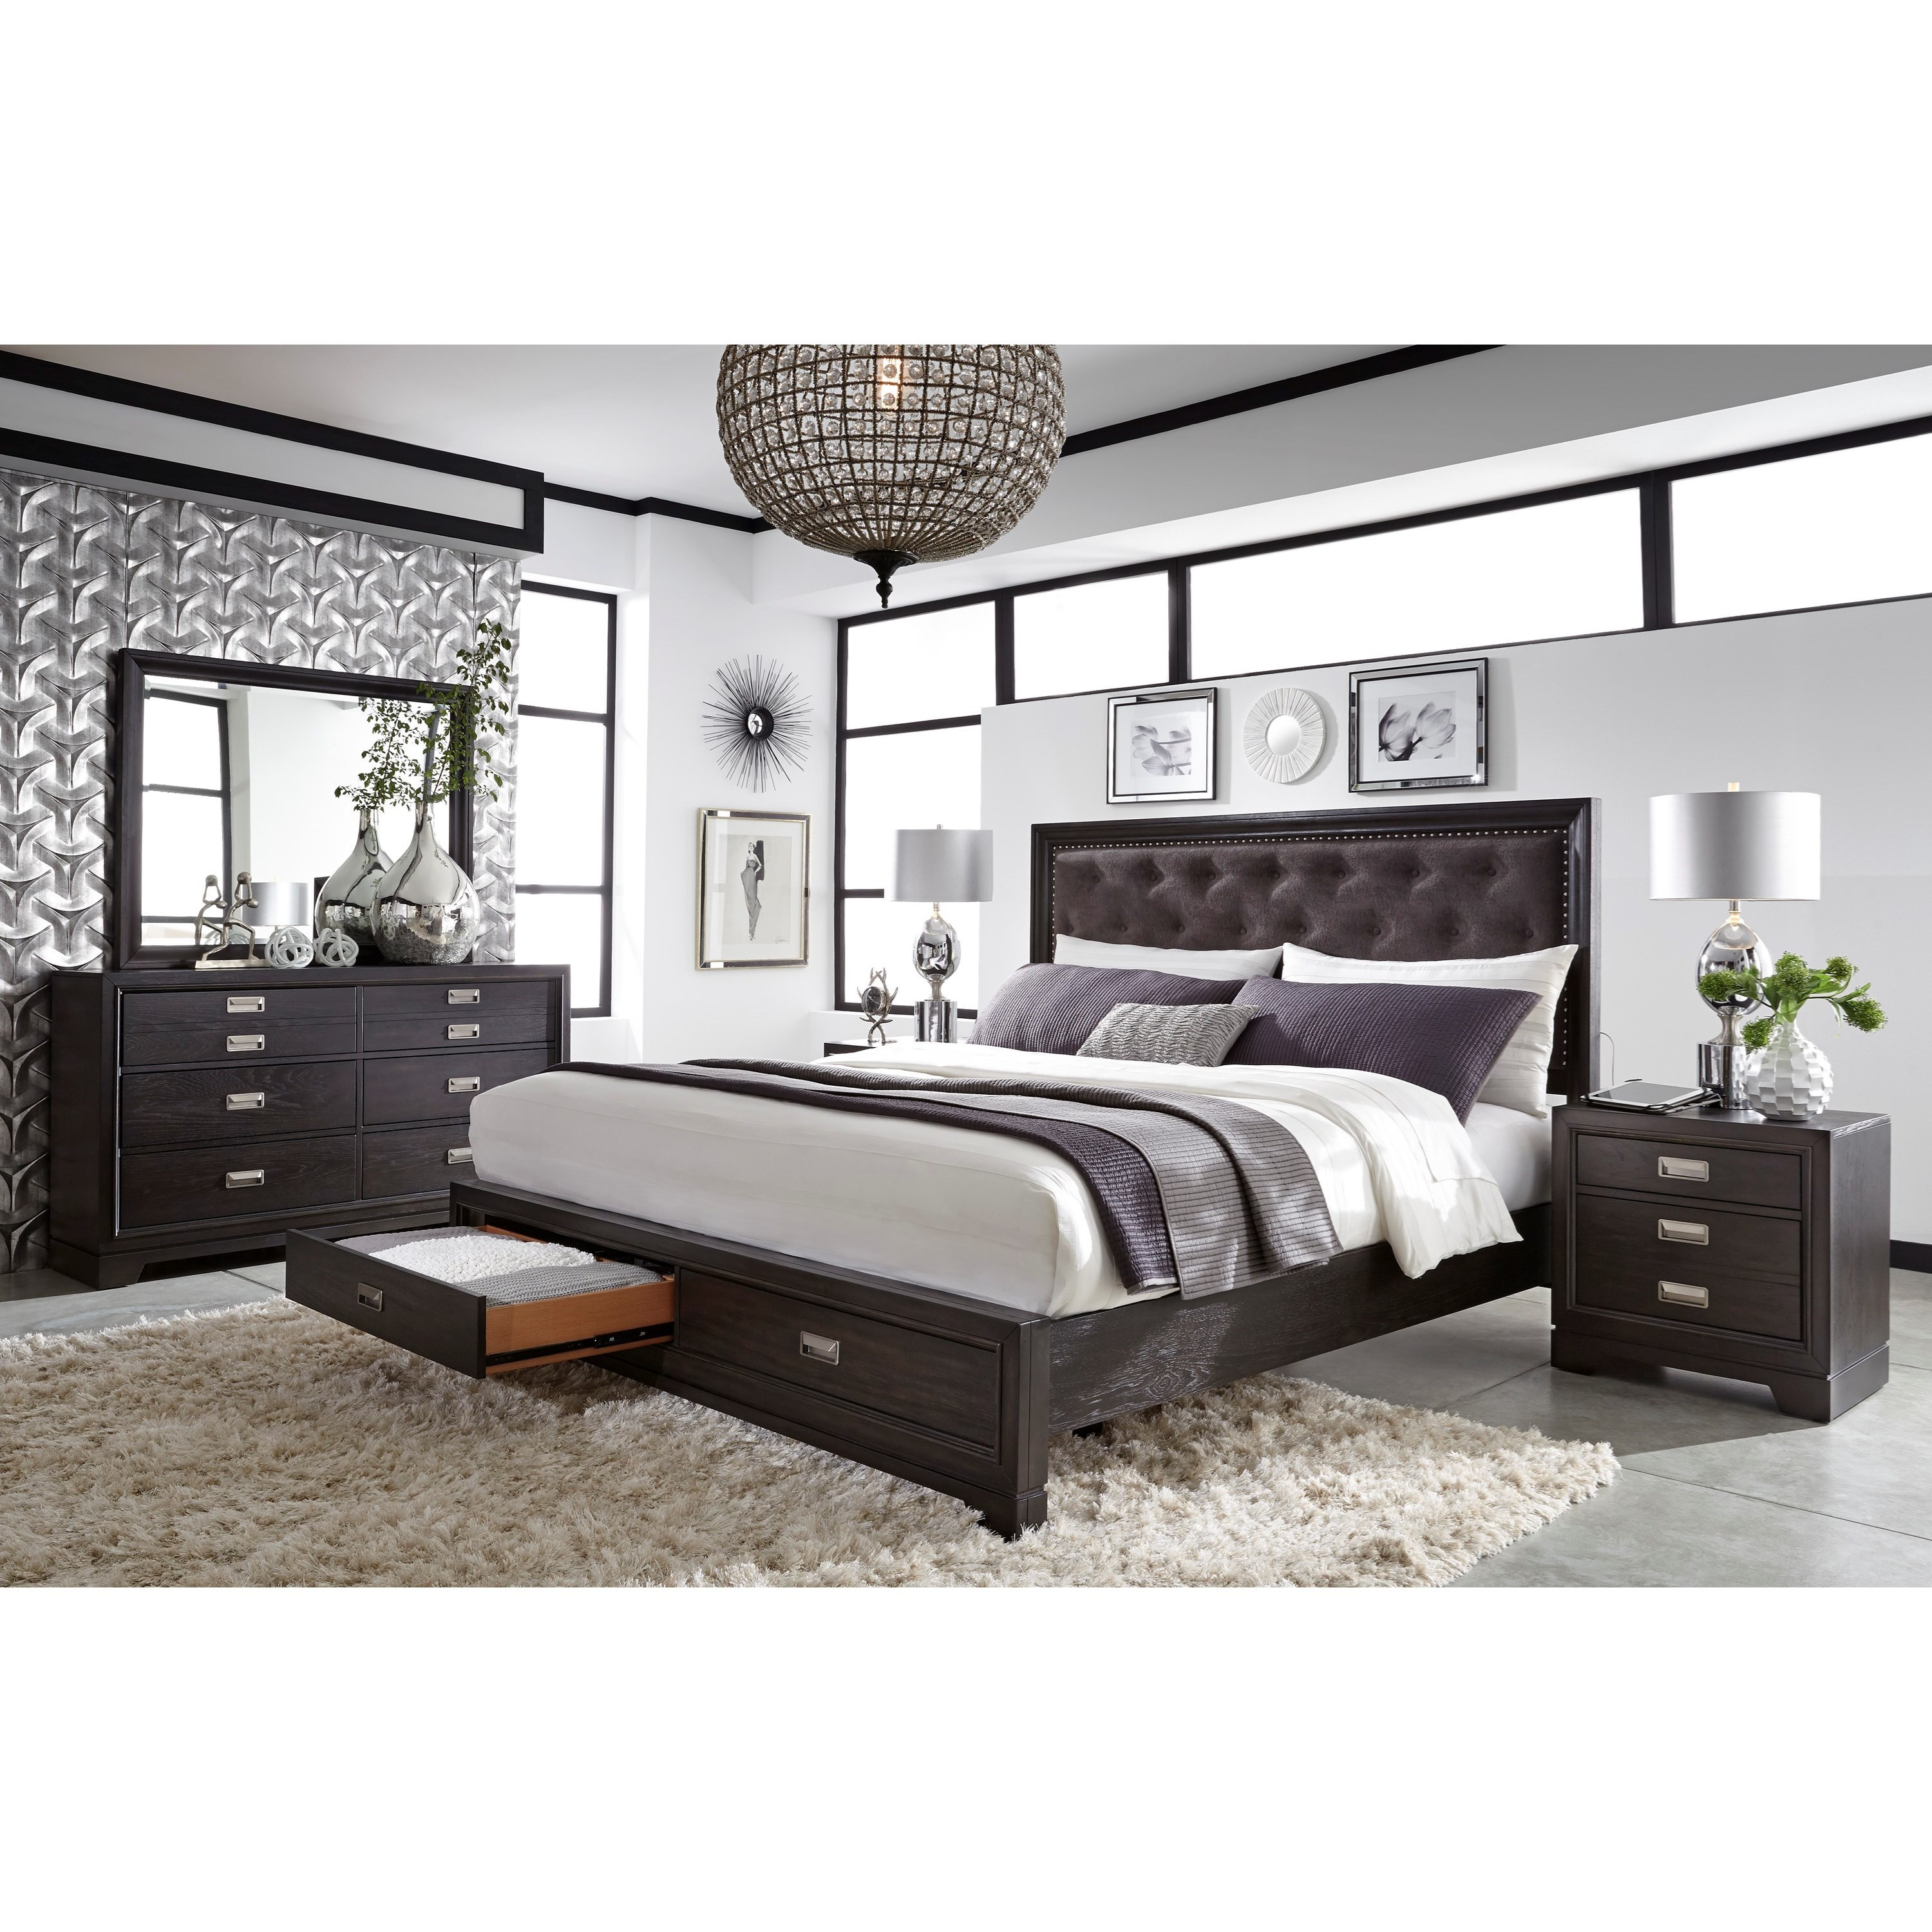 King Bedroom Group By Aspenhome